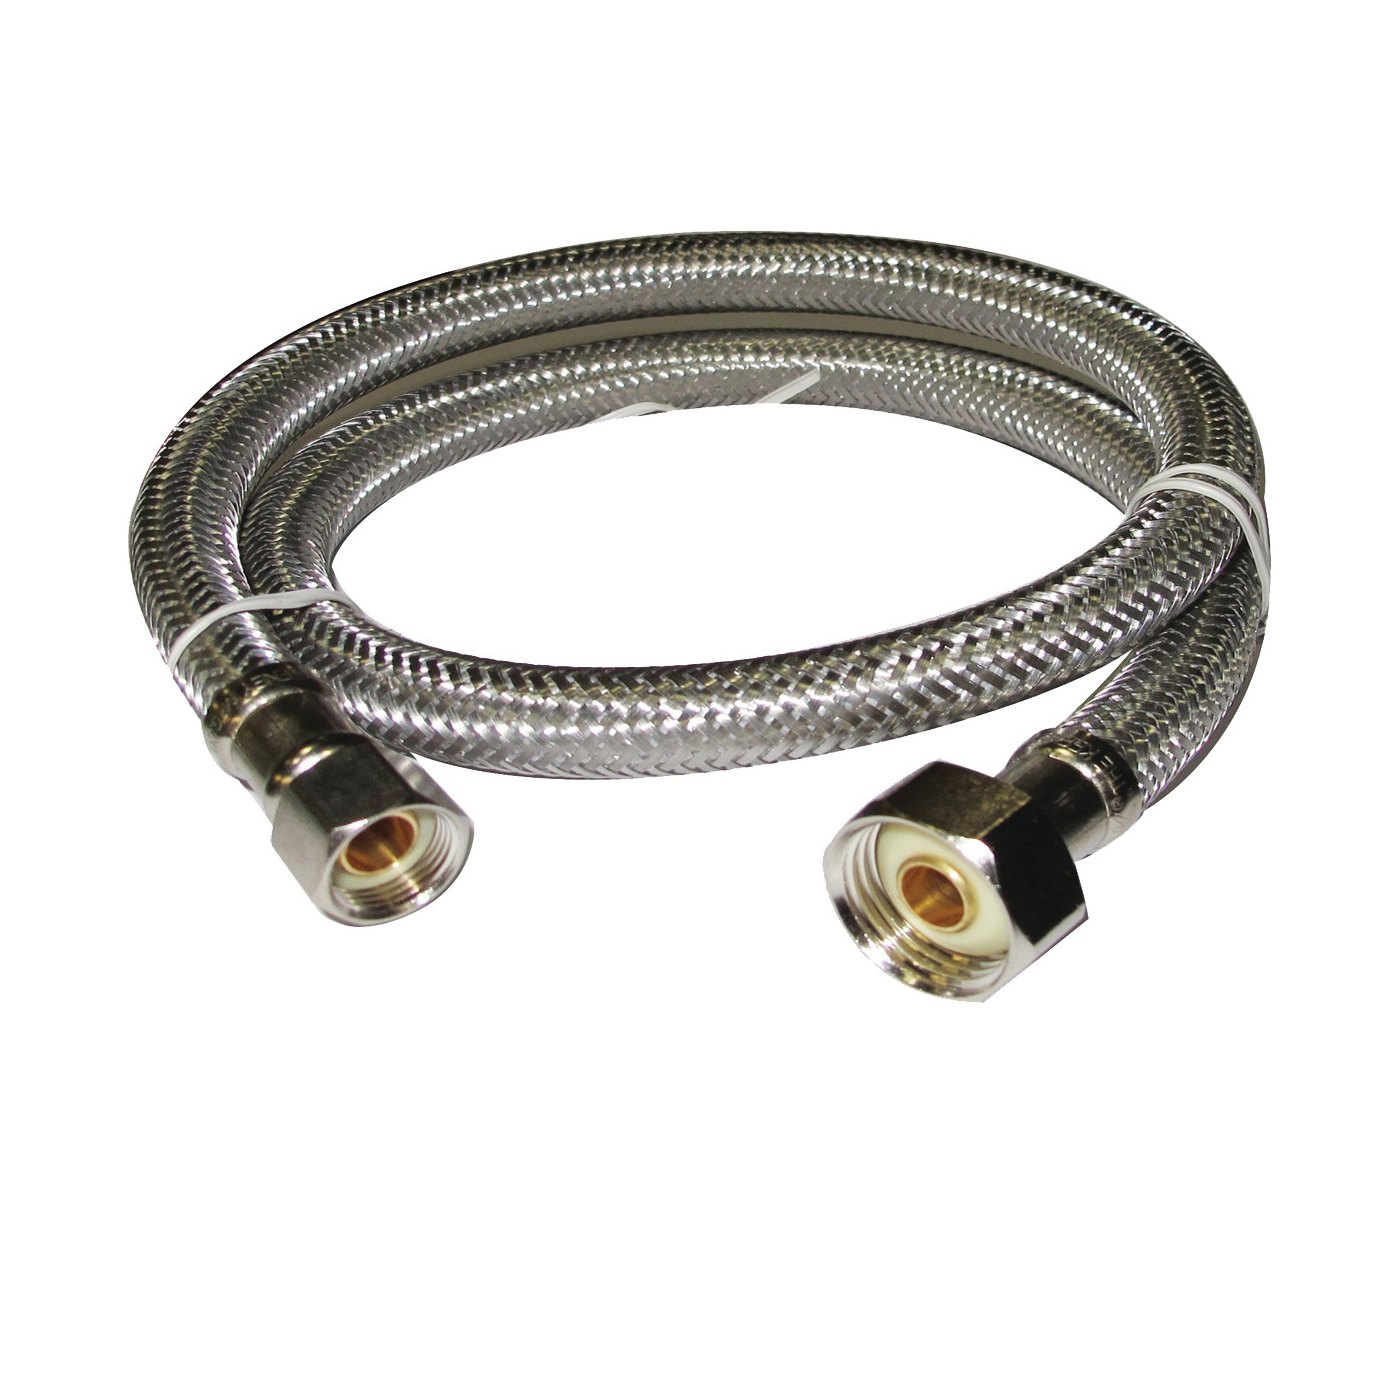 Picture of Plumb Pak EZ Series PP23808 Sink Supply Tube, 3/8 in Inlet, Compression Inlet, 1/2 in Outlet, FIP Outlet, 30 in L